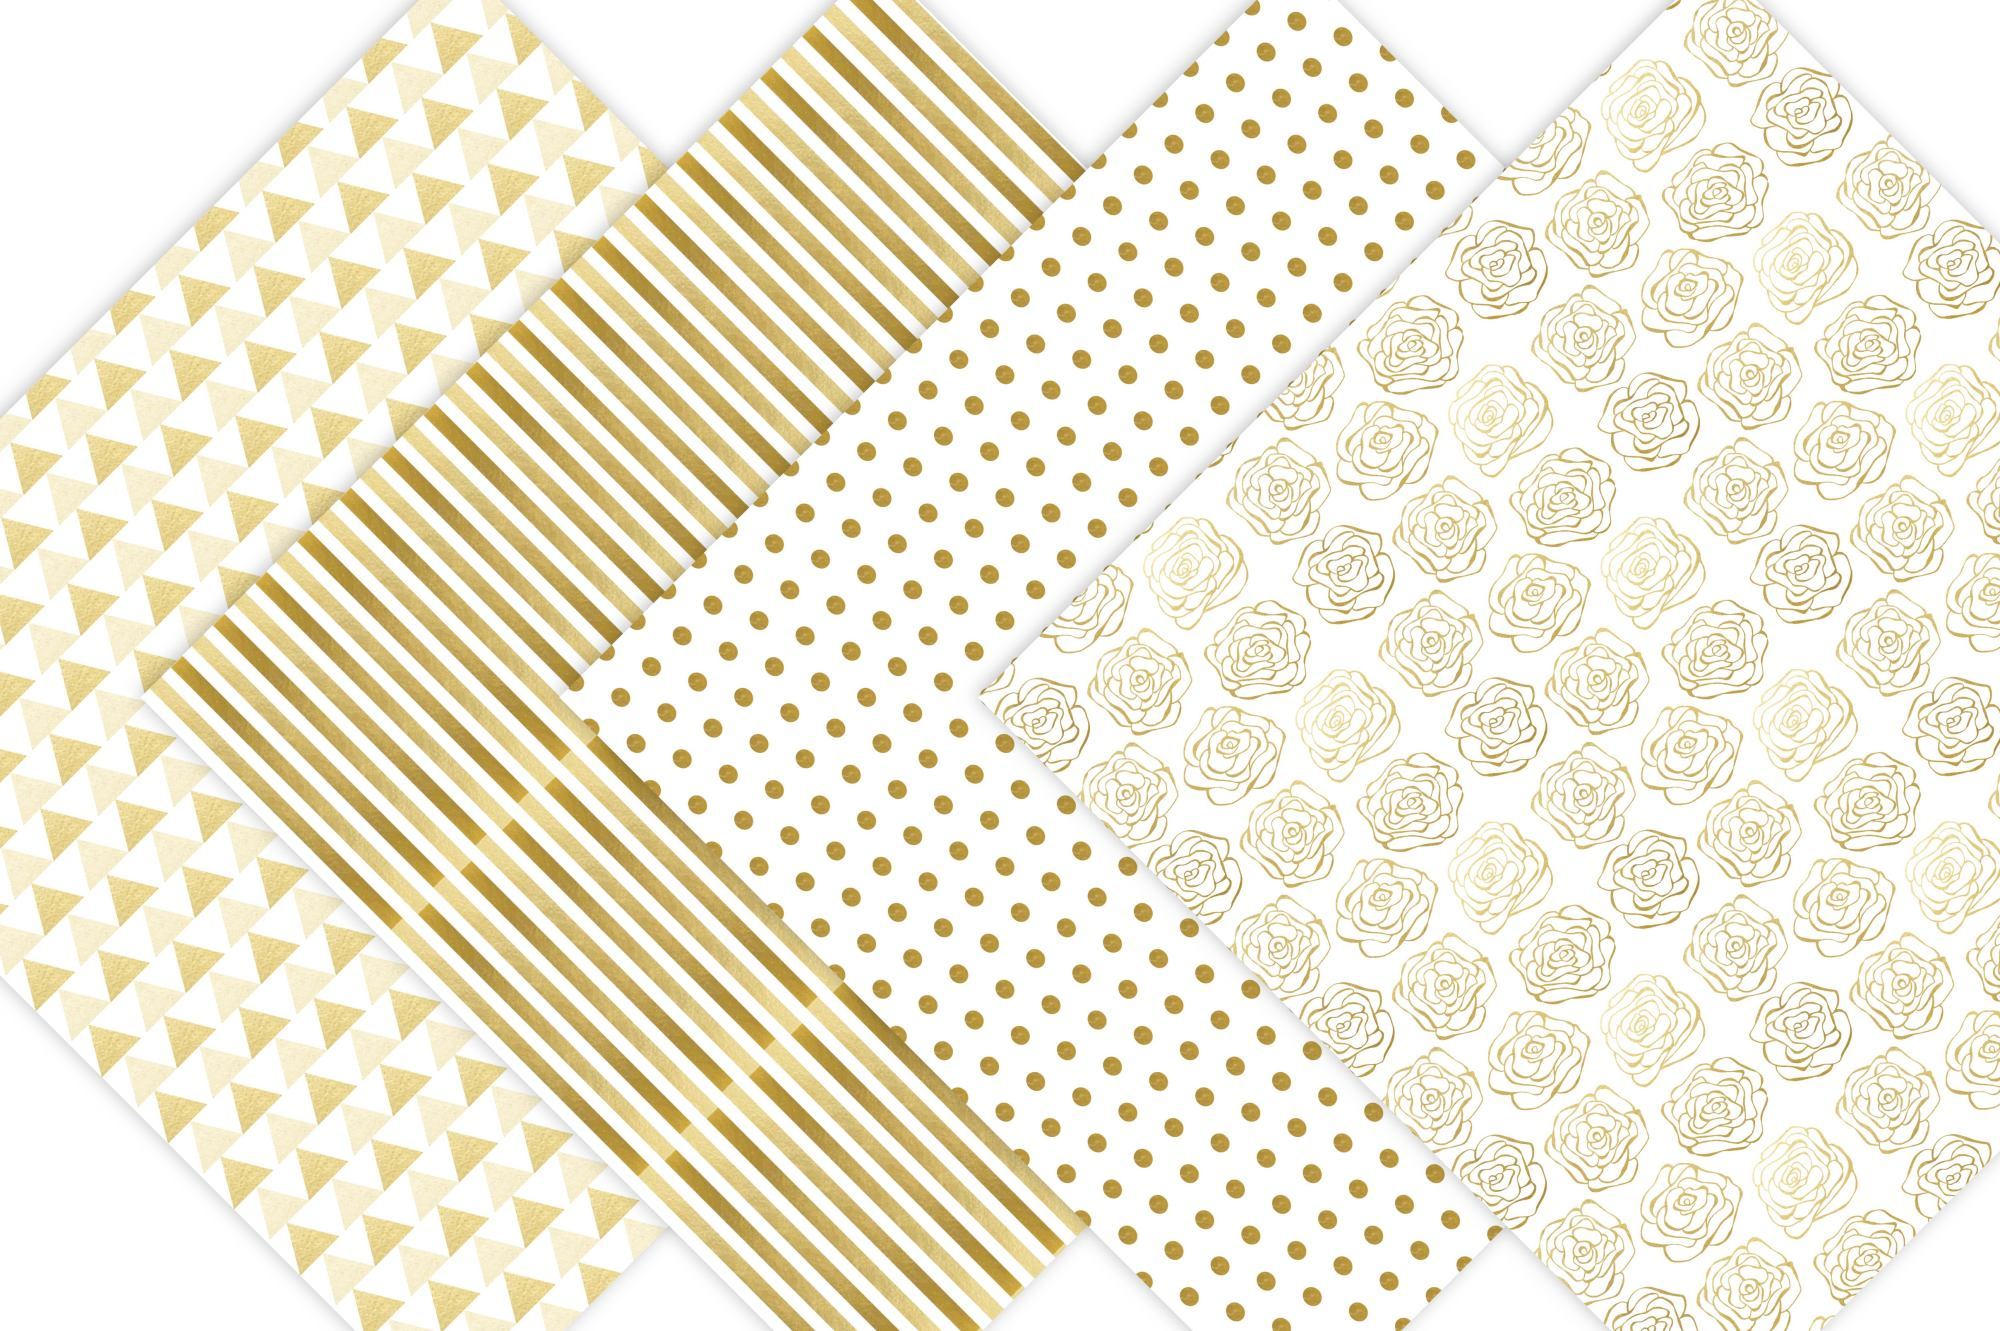 Gold Digital Paper example image 3